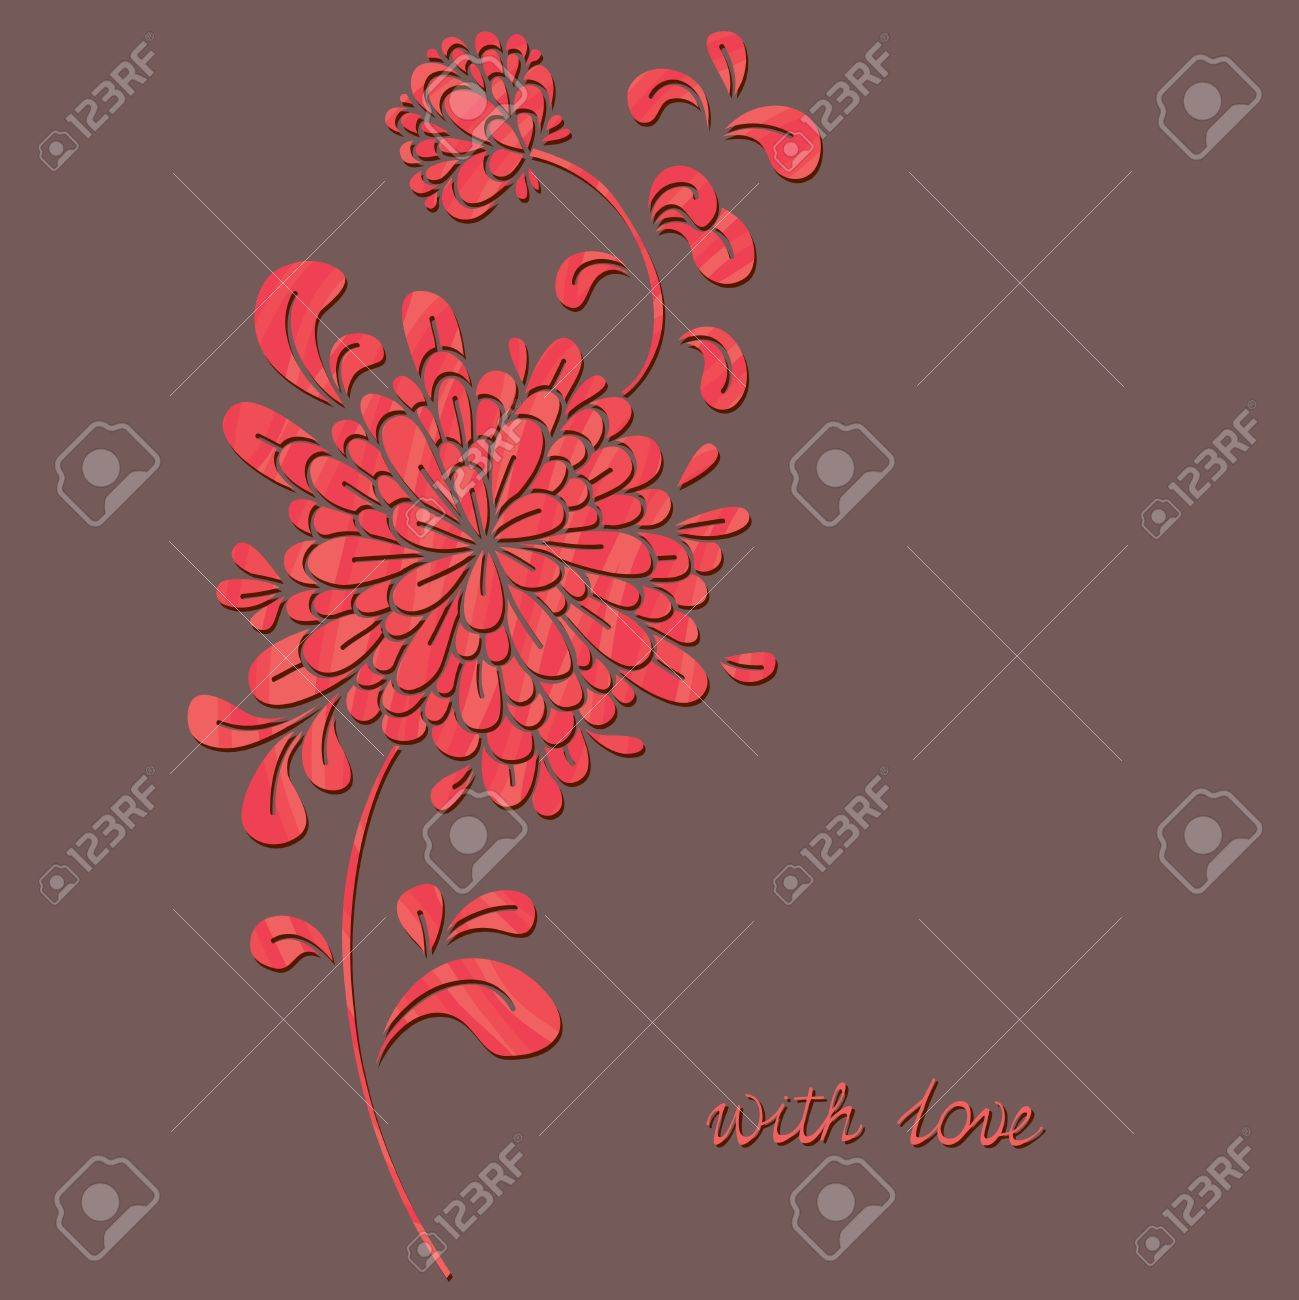 Postcard. A flower, different colors shimmering in the background. Stock Vector - 12269194